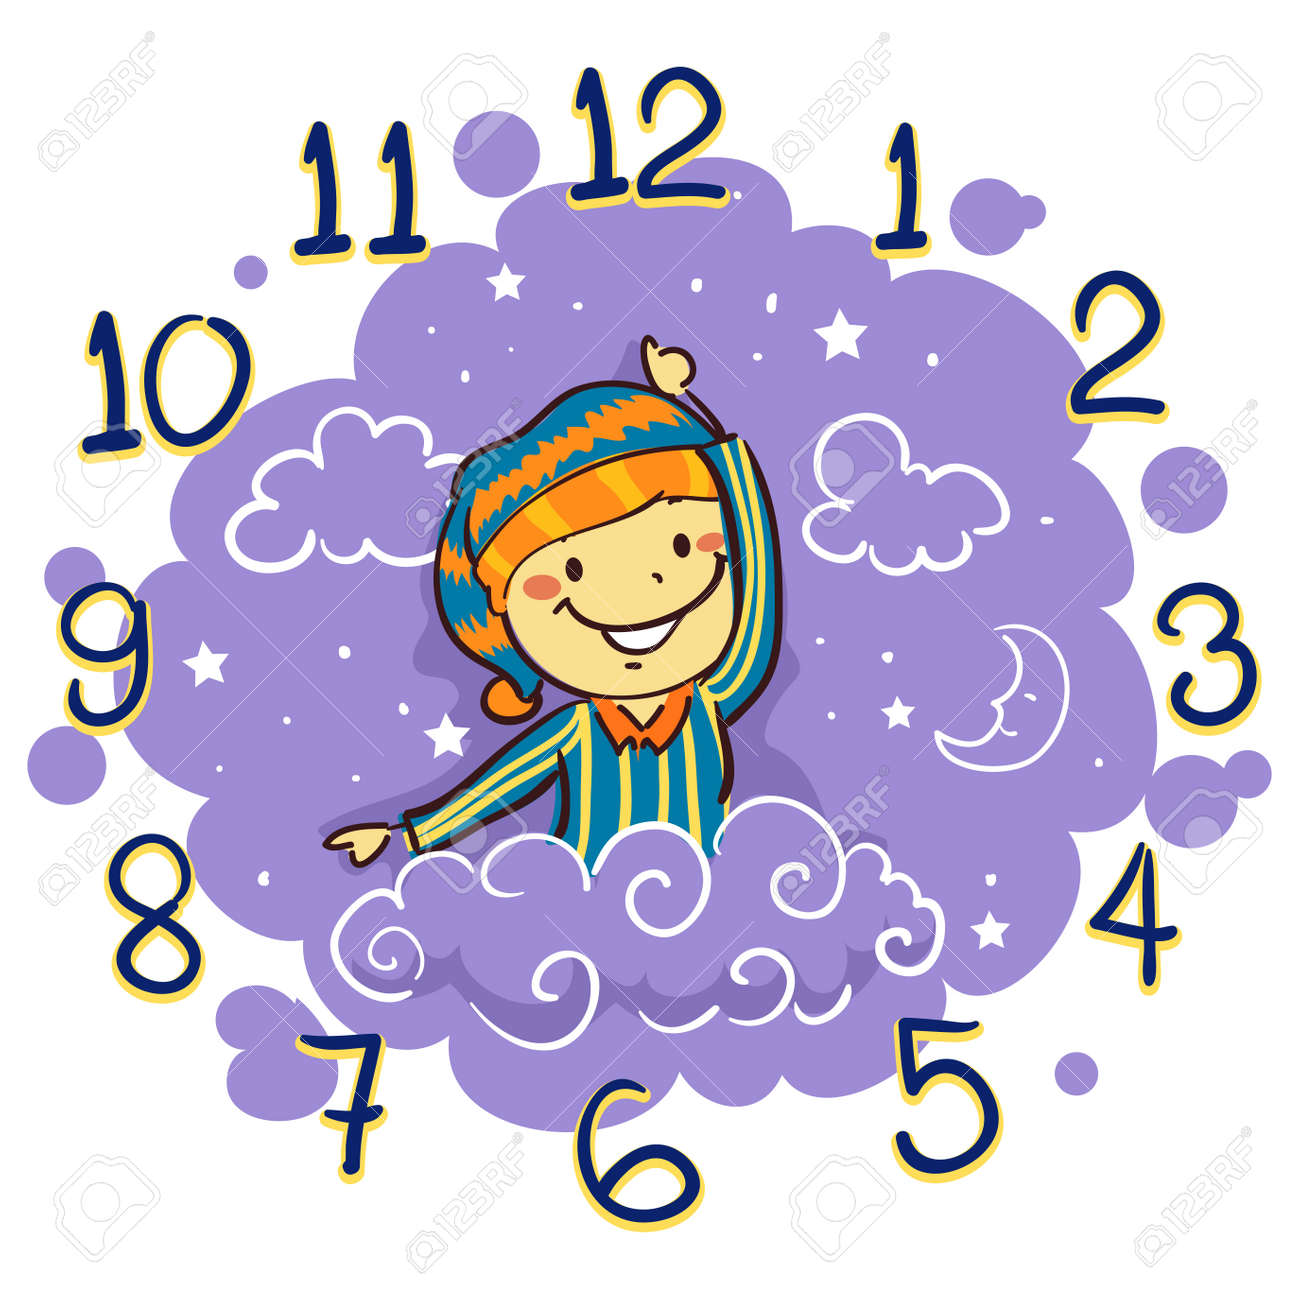 vector illustration of kid using his arm as hand clock for bedtime rh 123rf com bedtime stories clipart clipart bedtime story